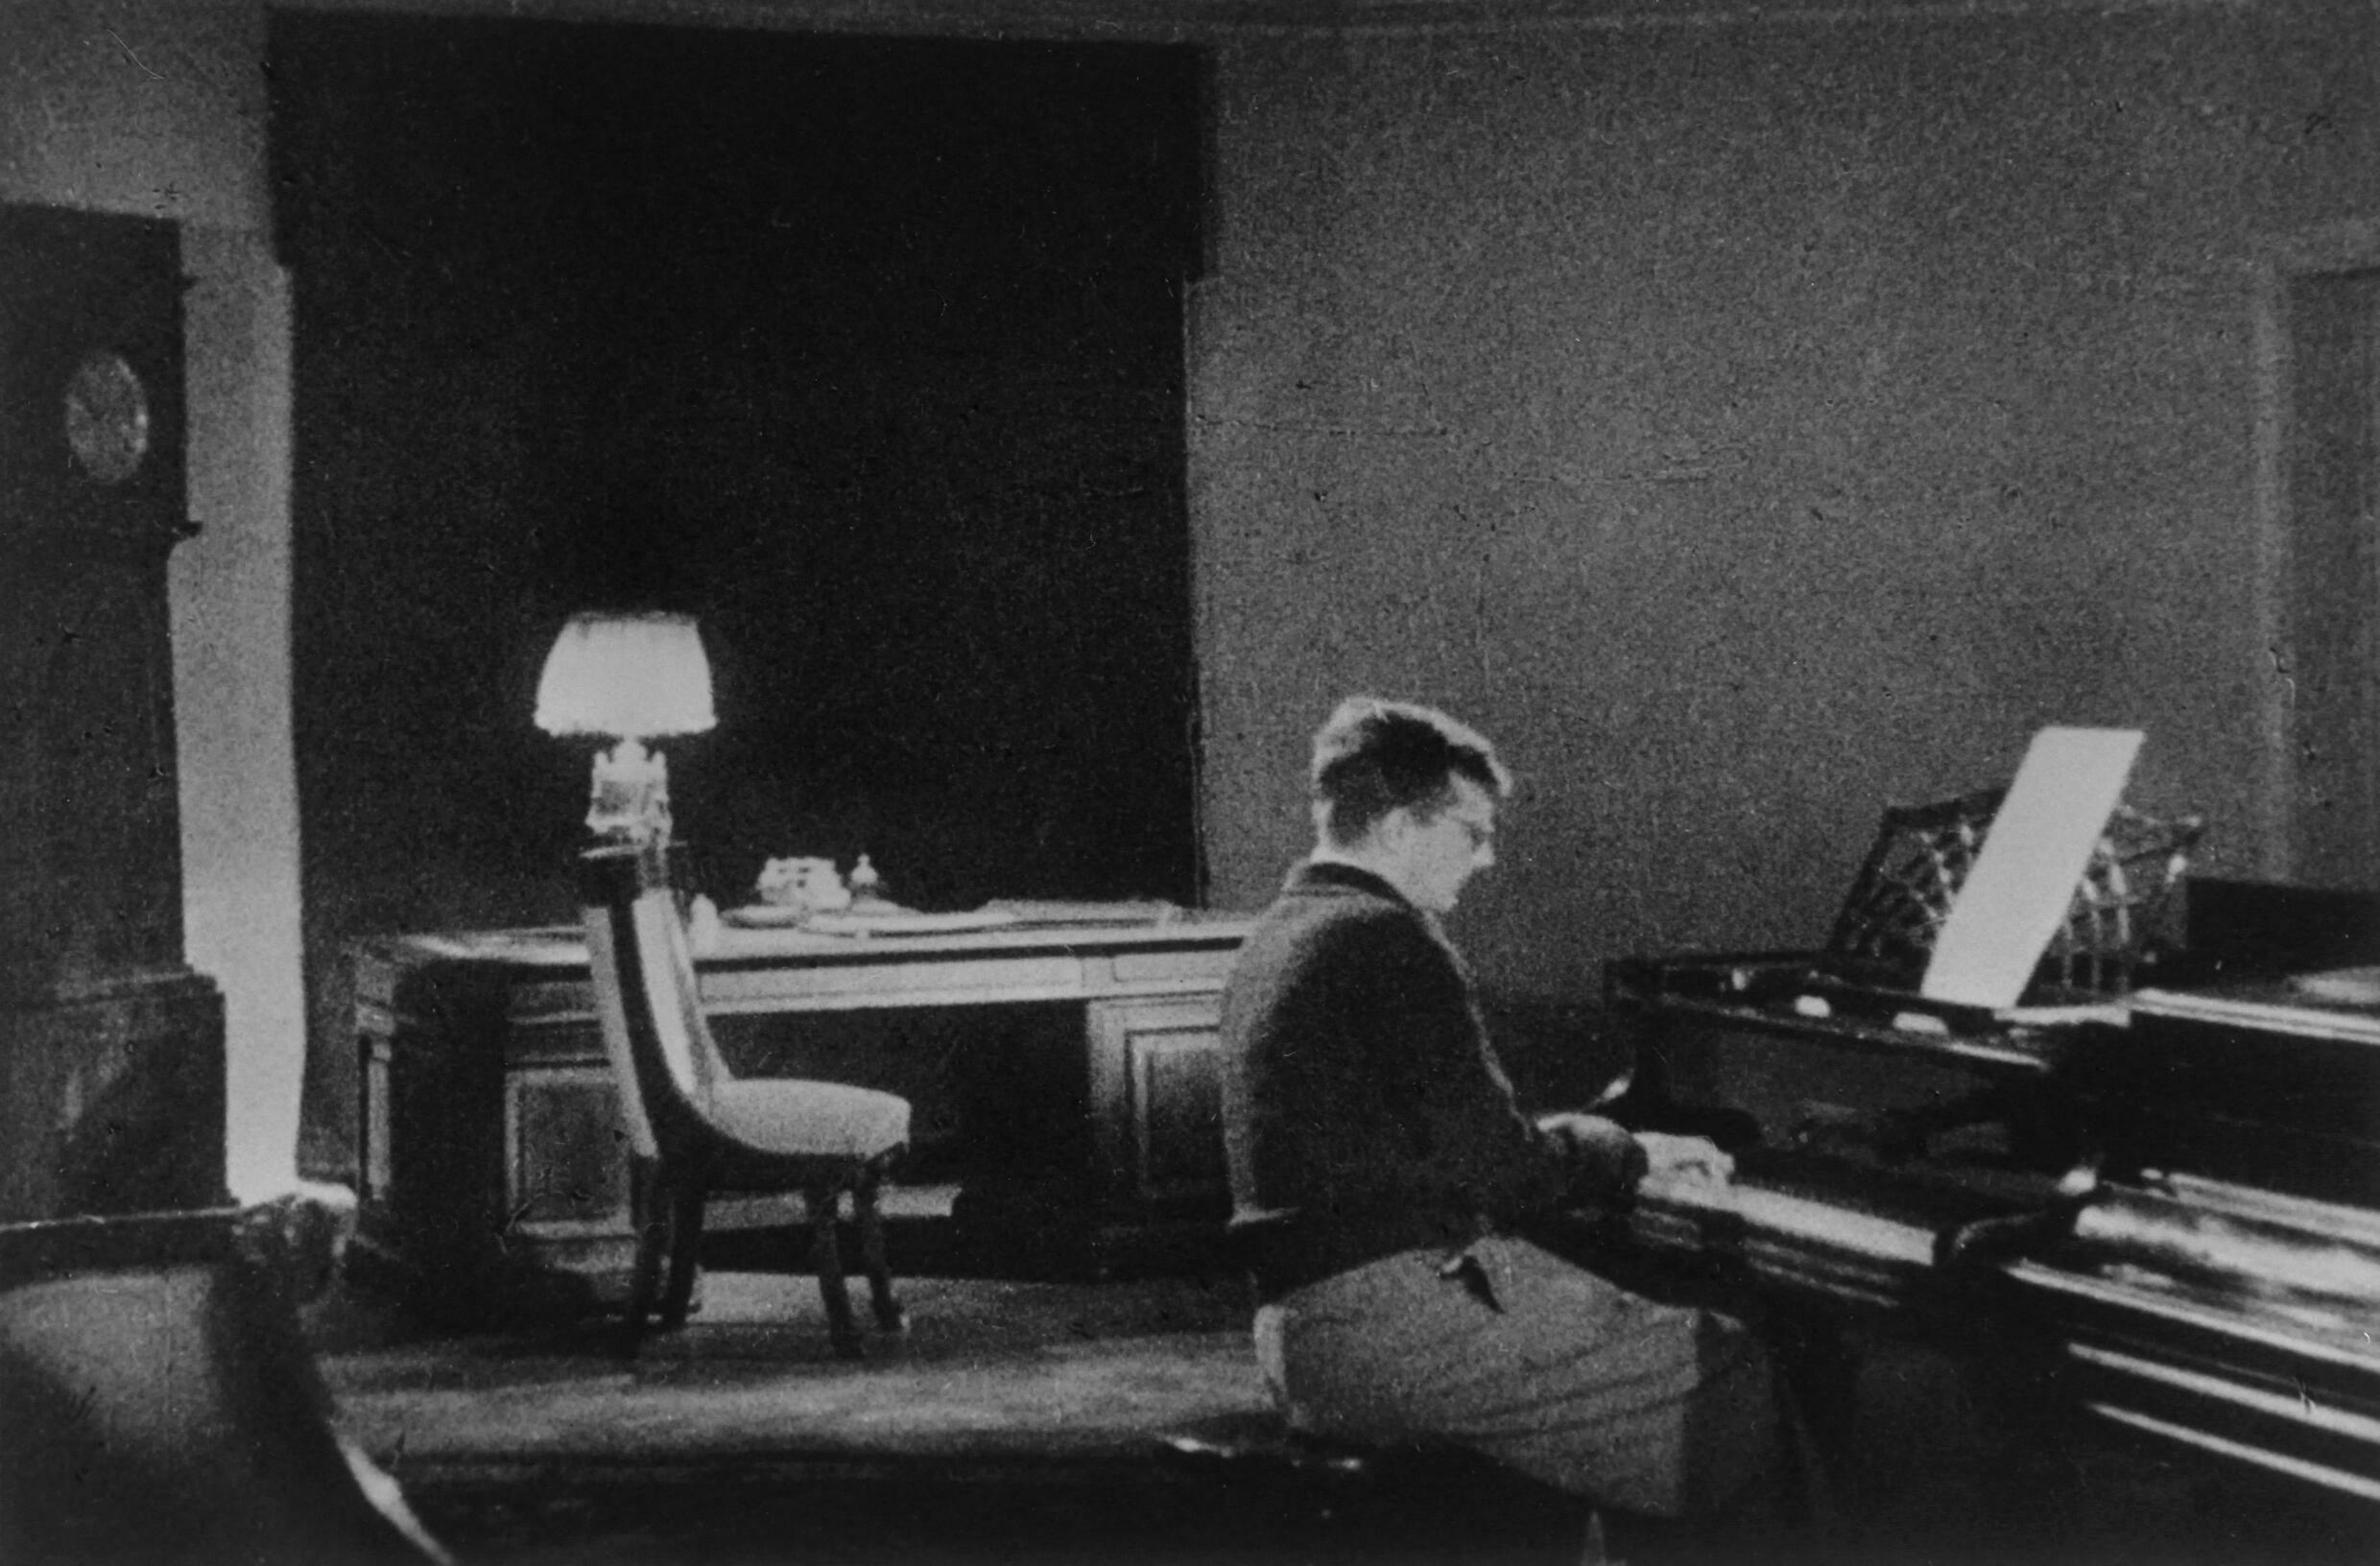 A Soviet press release of Russian composer Dmitri Shostakovich composing his 7th Symphony during the siege of Leningrad.